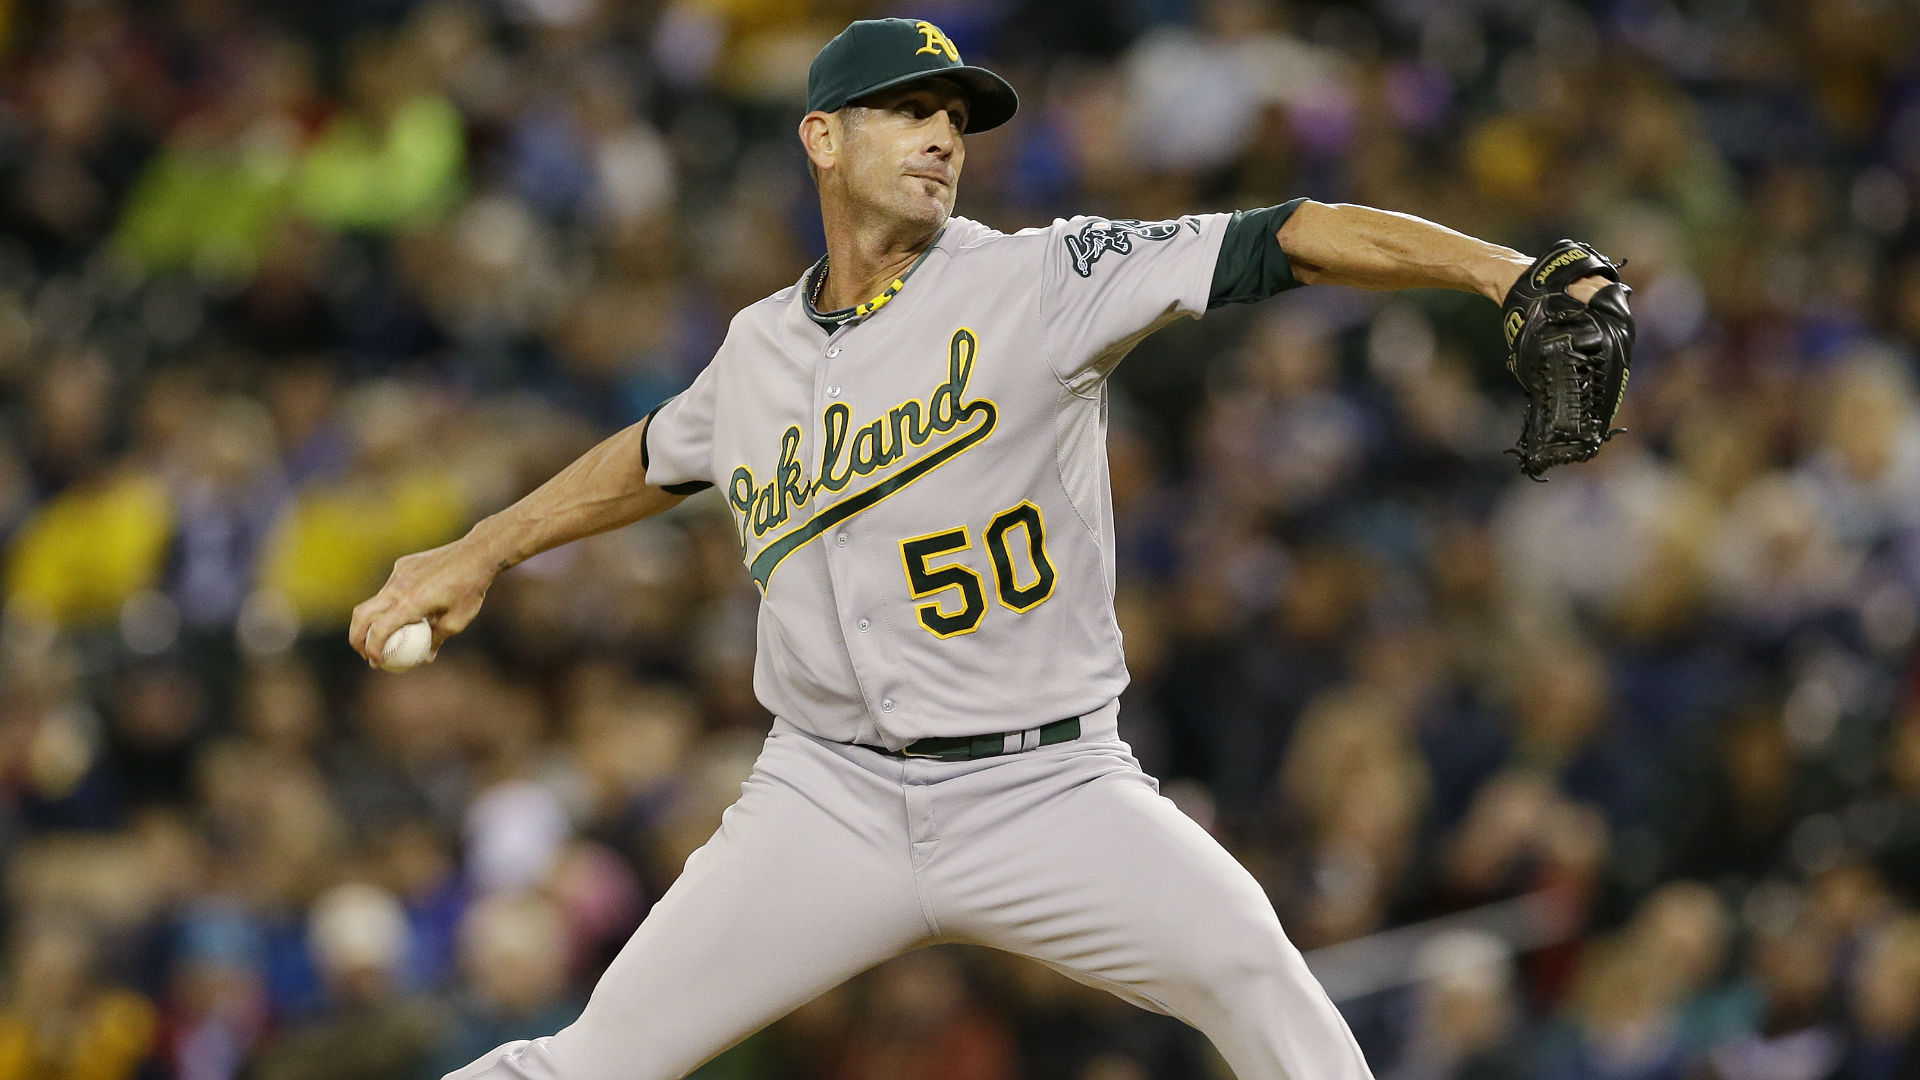 Fantasy Baseball Hot Stove: Balfour signs with Orioles